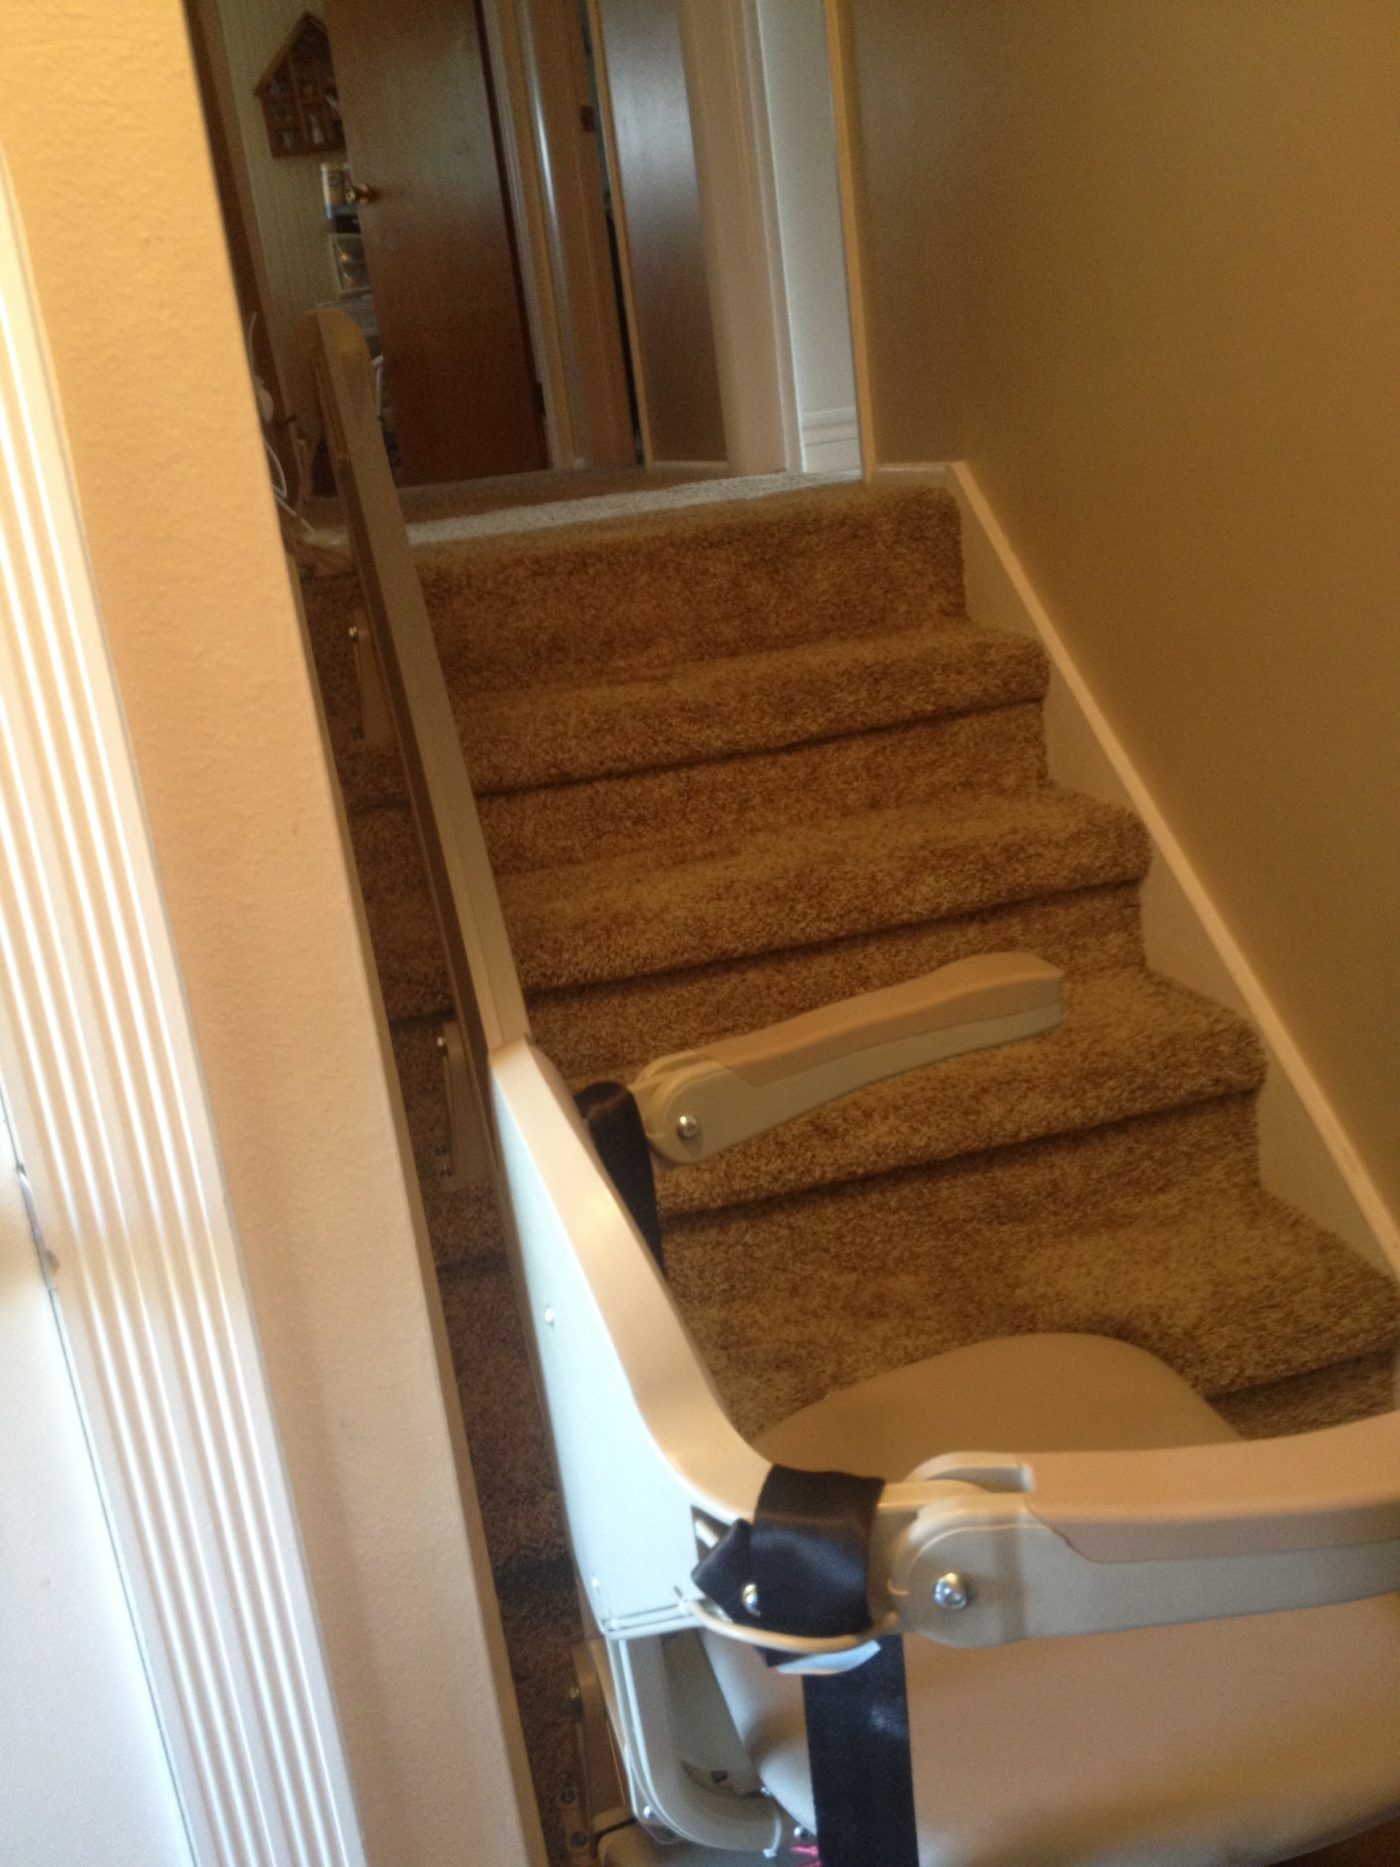 Chair Lift to Basement with Room for Door at Top in Clinton Utah